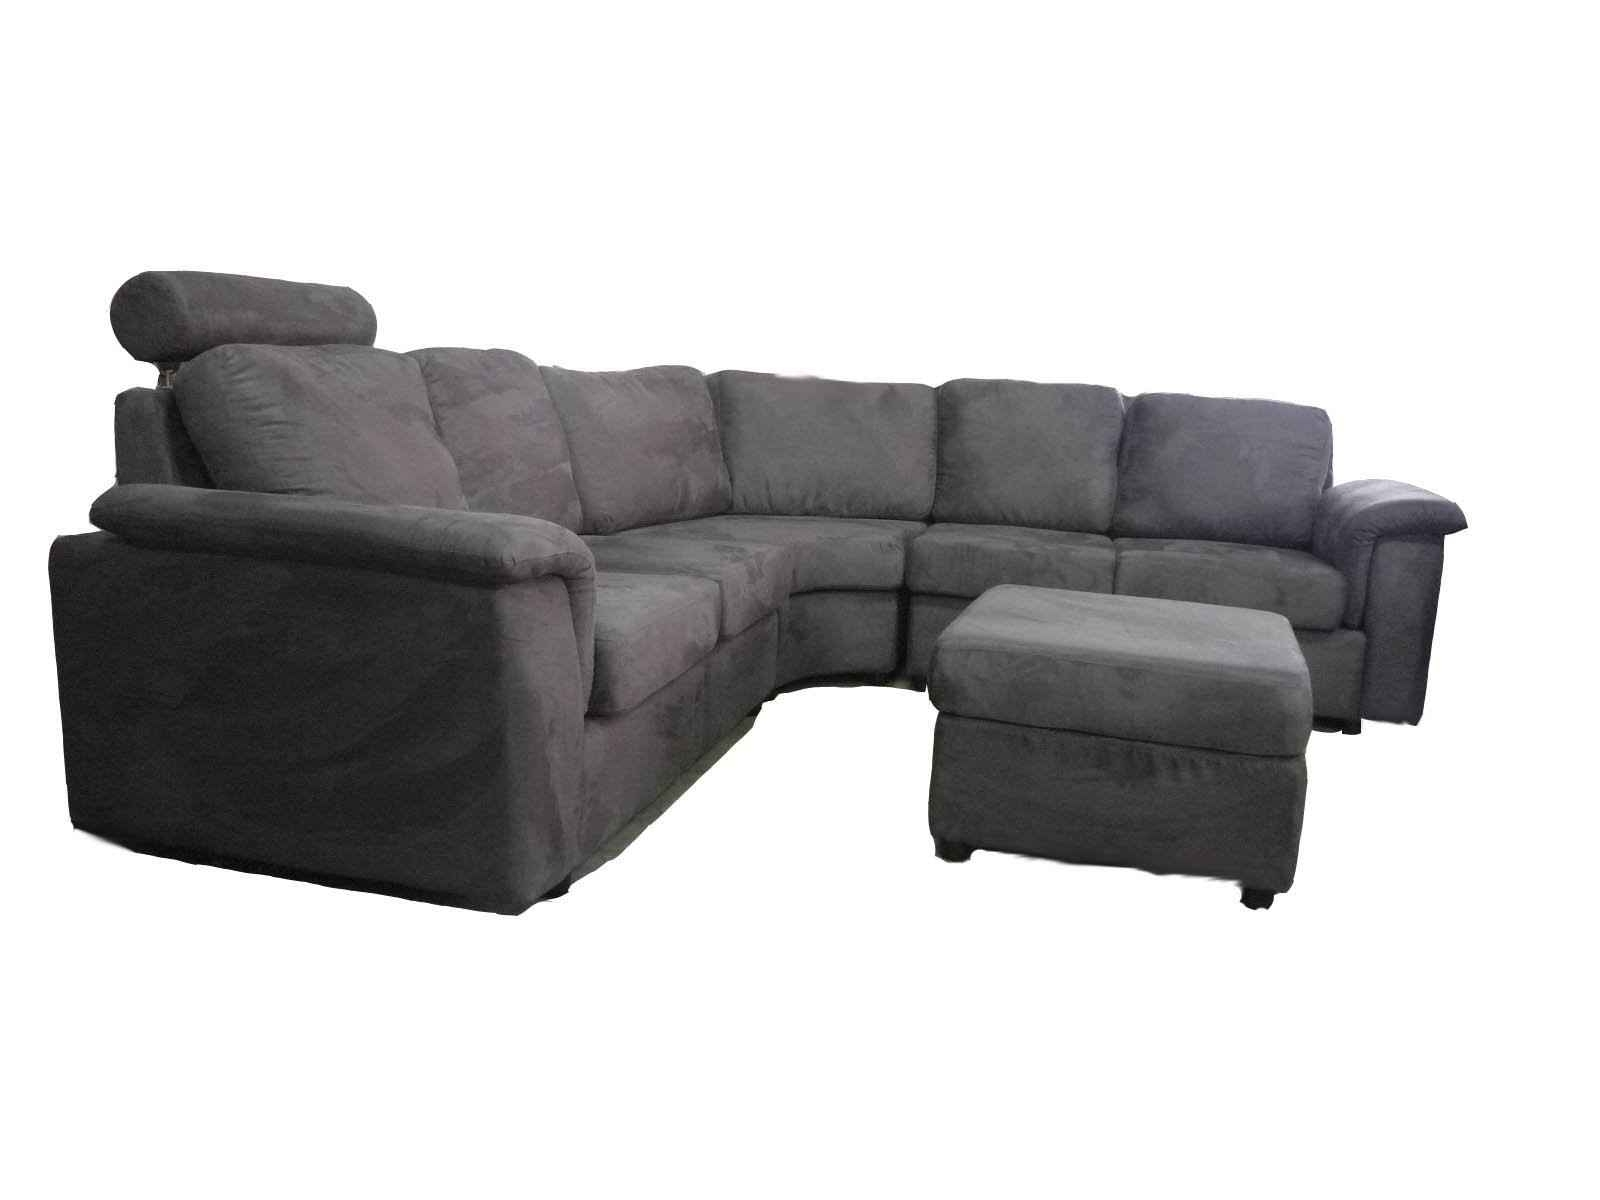 Beautiful Sectional Sofas Ikea 60 For Living Room Sofa Ideas With Intended For Sectional Sofas At Ikea (View 10 of 10)